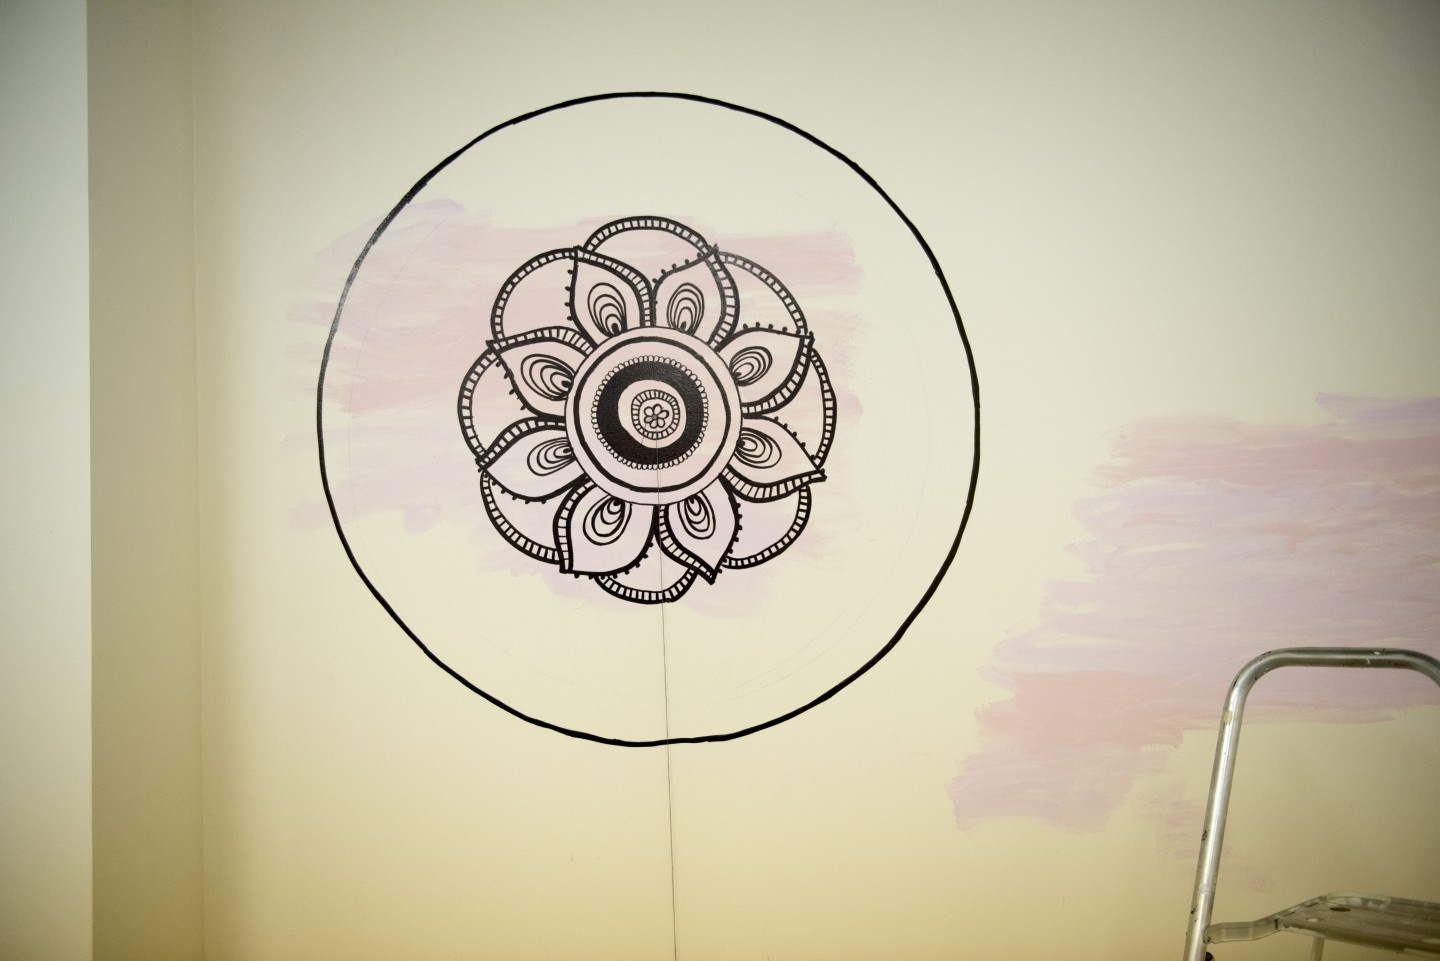 Diy Mandala Wall Art | With A Sharpie And No Stencils! Throughout Best And Newest Mandala Wall Art (View 5 of 20)